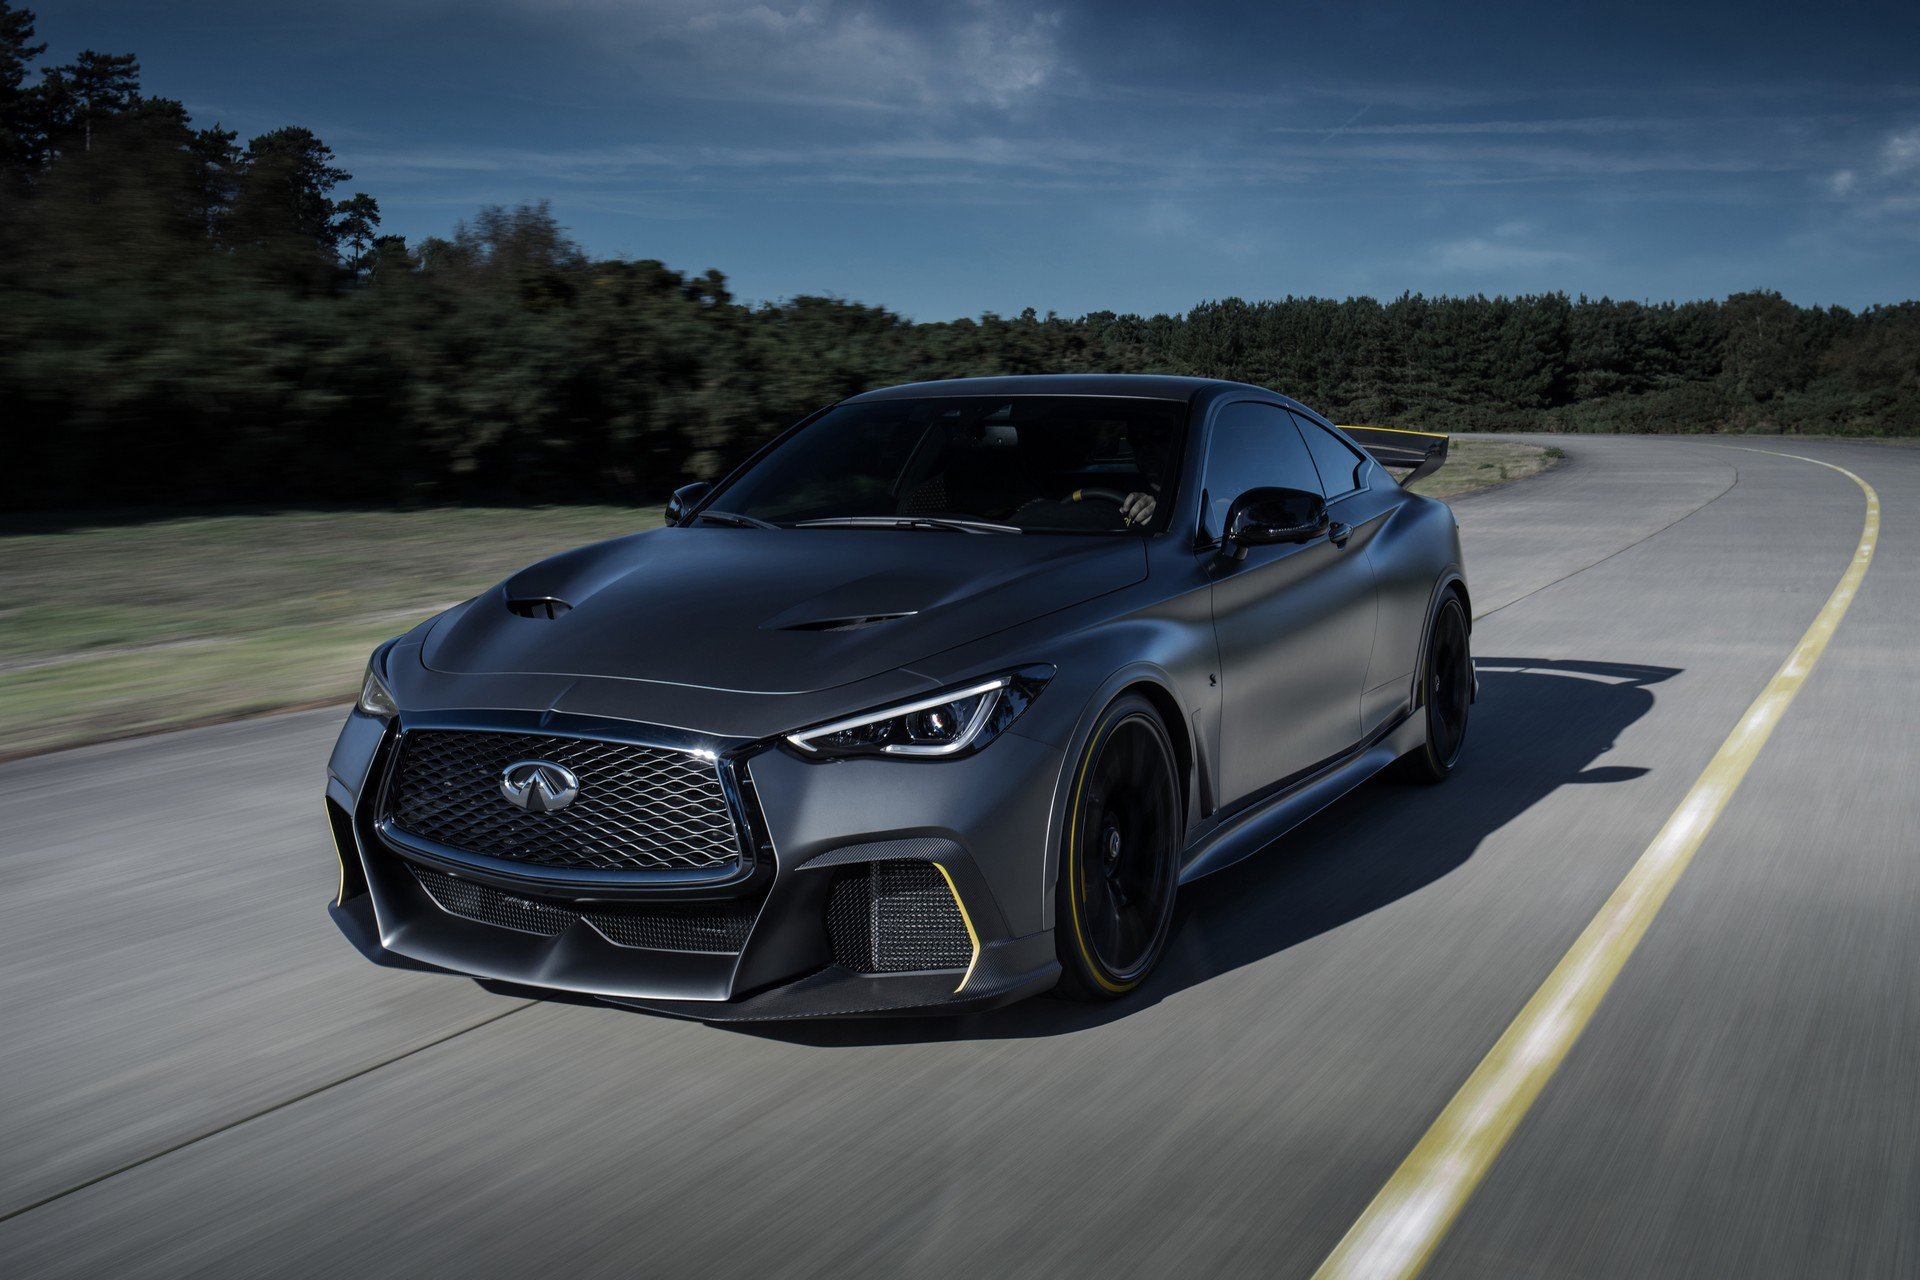 Infiniti Project Black S Prototype (32)